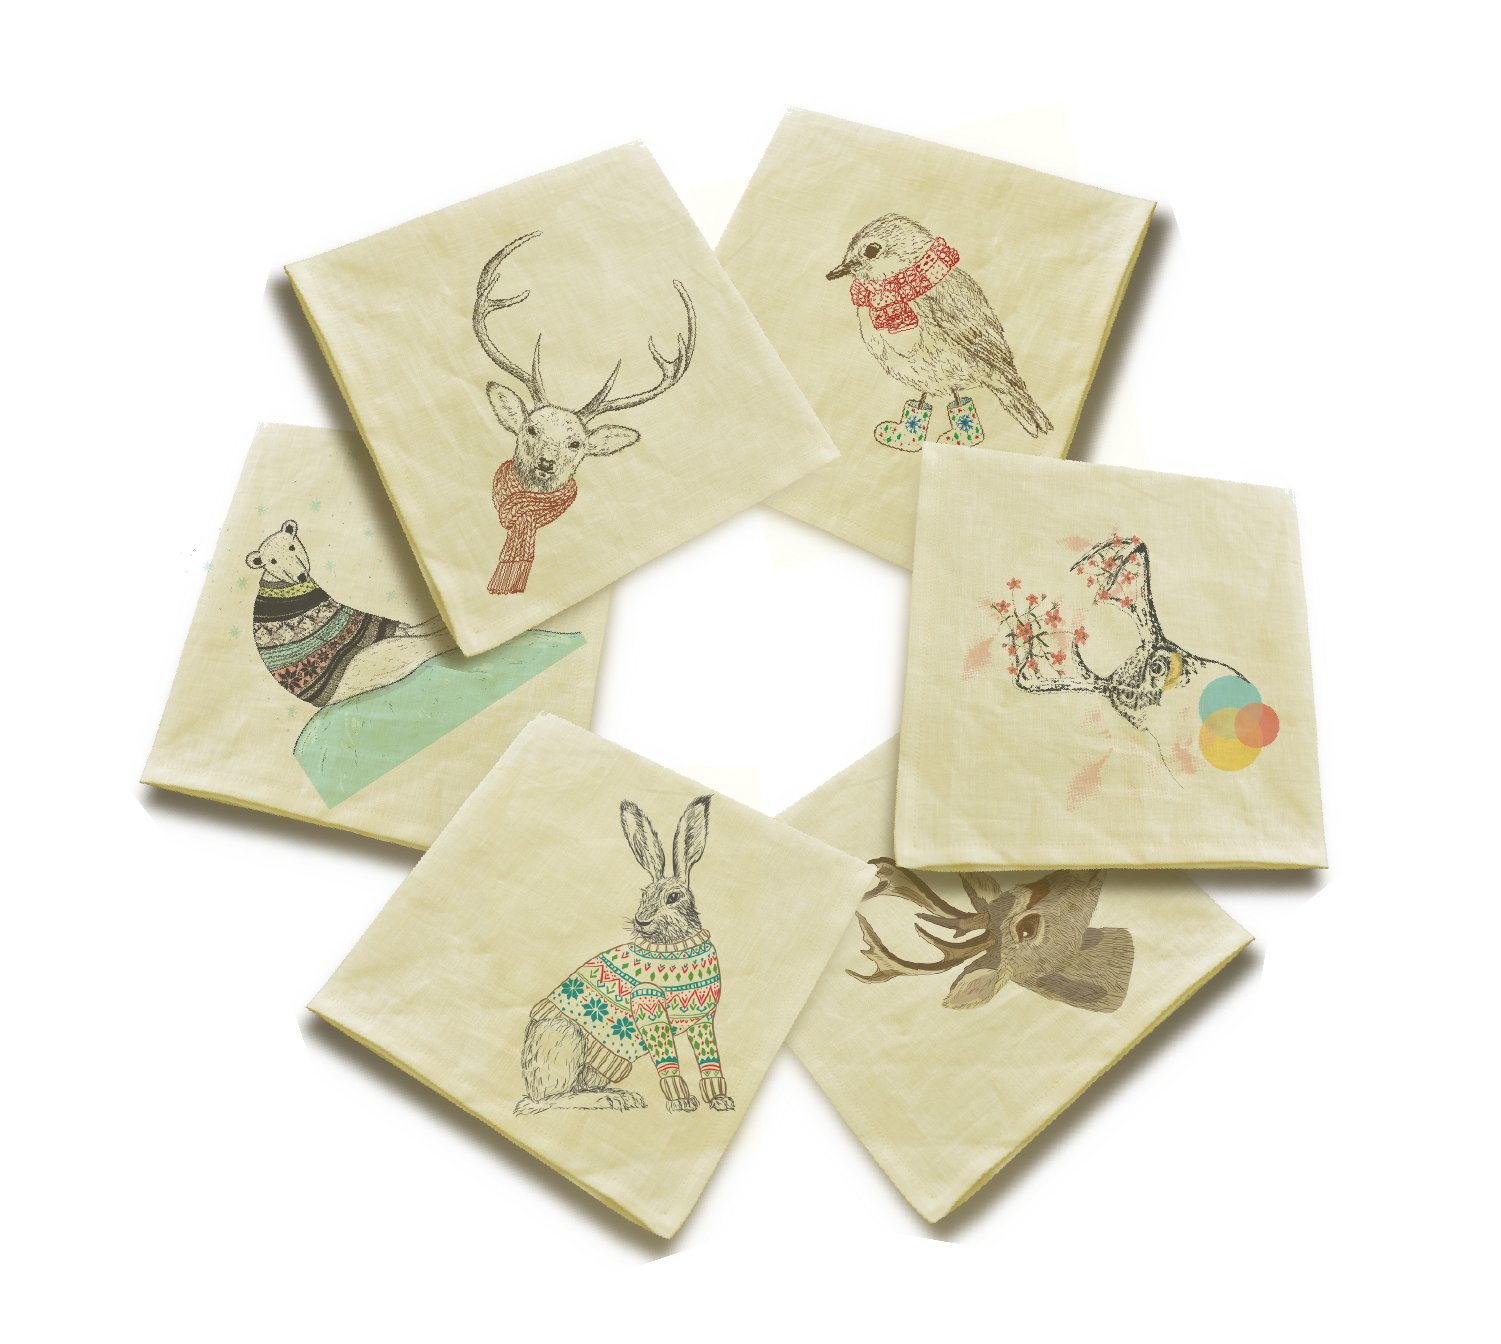 Animals in sweater 1 Printed Cotton Linen Craft Dinner Napkins VHN_01 Lot of 6